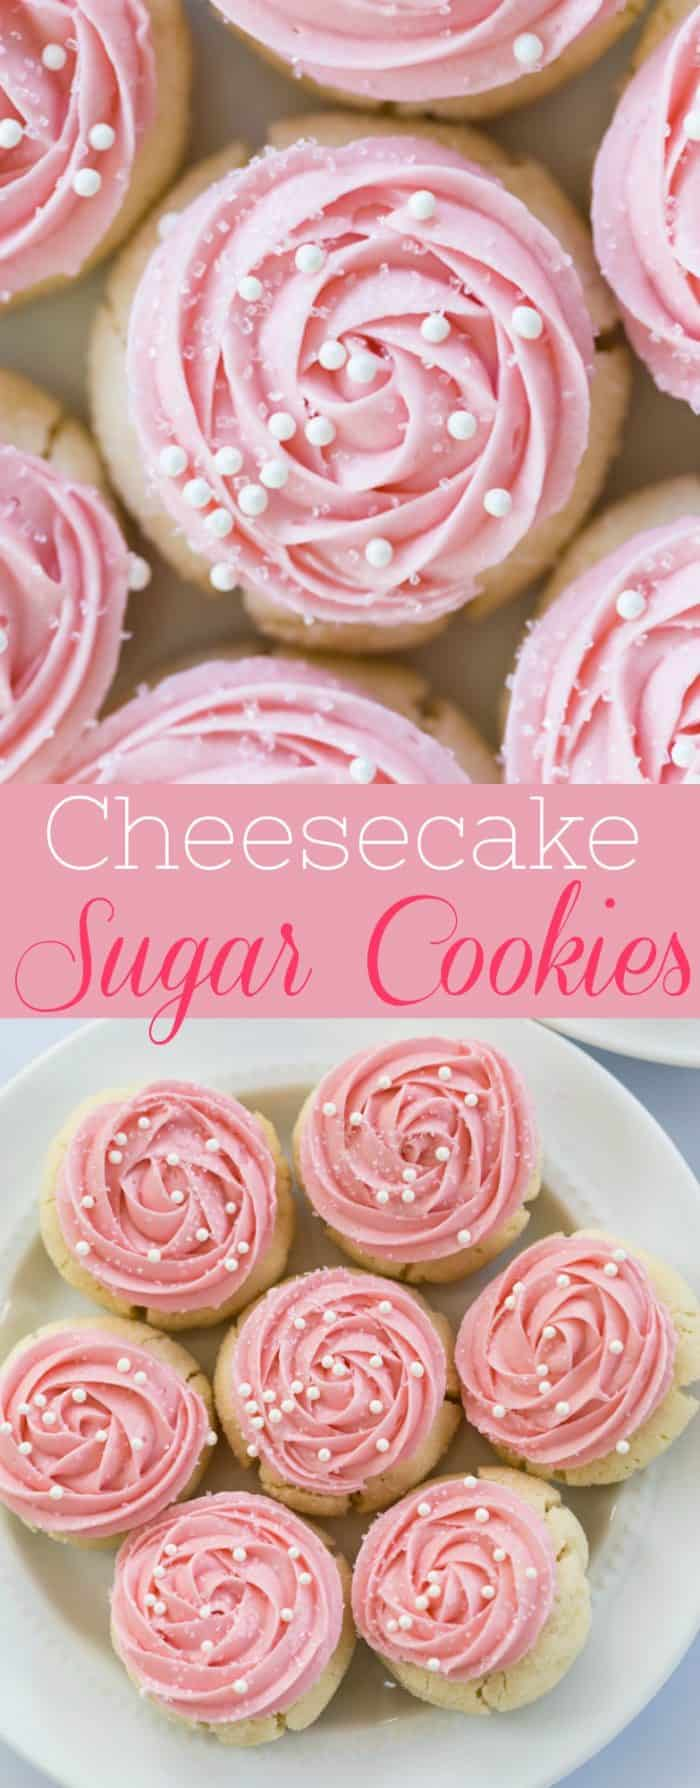 Sweet, chewy sugar cookies topped with a smooth and creamy, cheesecake frosting with an easy floral design.  | The Cozy Cook | #cookies #dessert #mothersdayrecipes #pink #frosting #sugarcookies #holidays #valentinesday